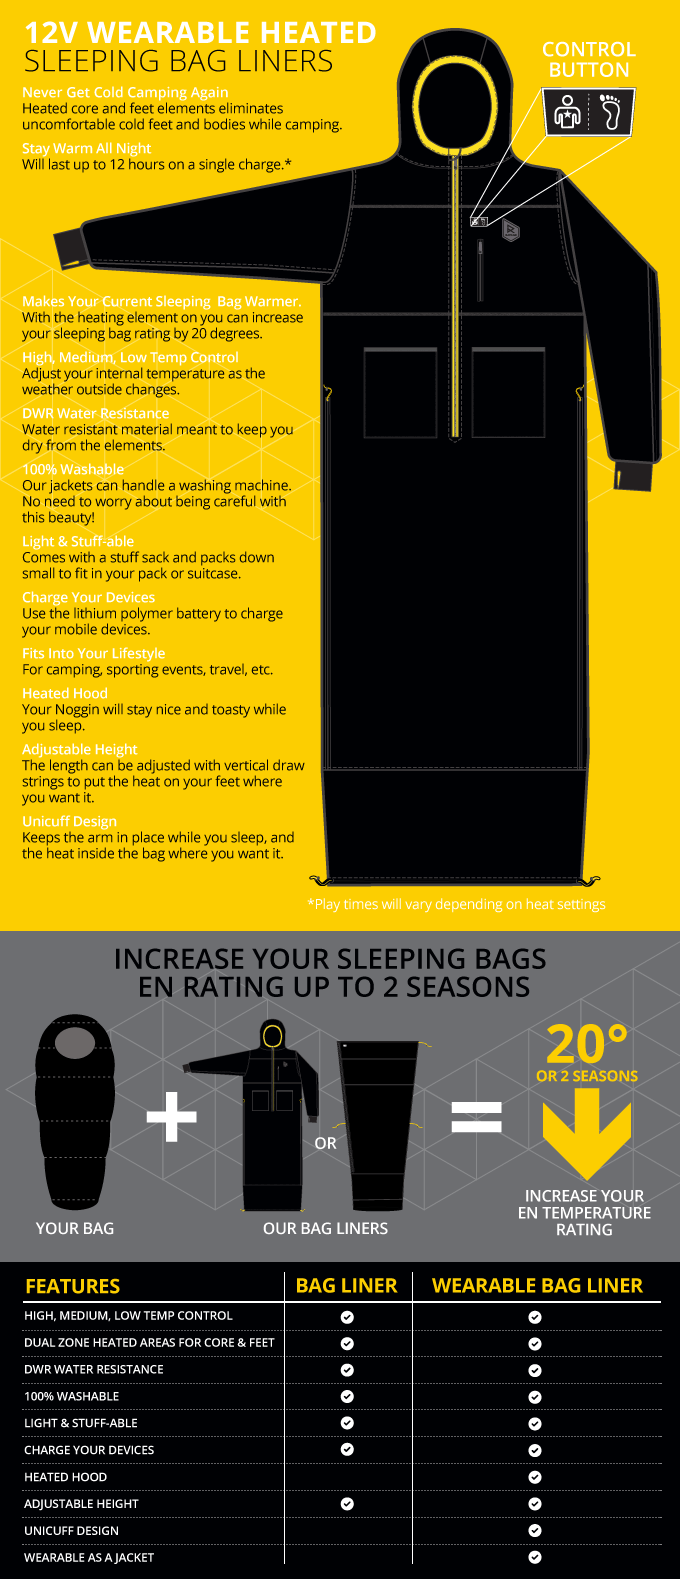 12v Wearable Heated Sleeping Bag Liners Never Get Cold Again